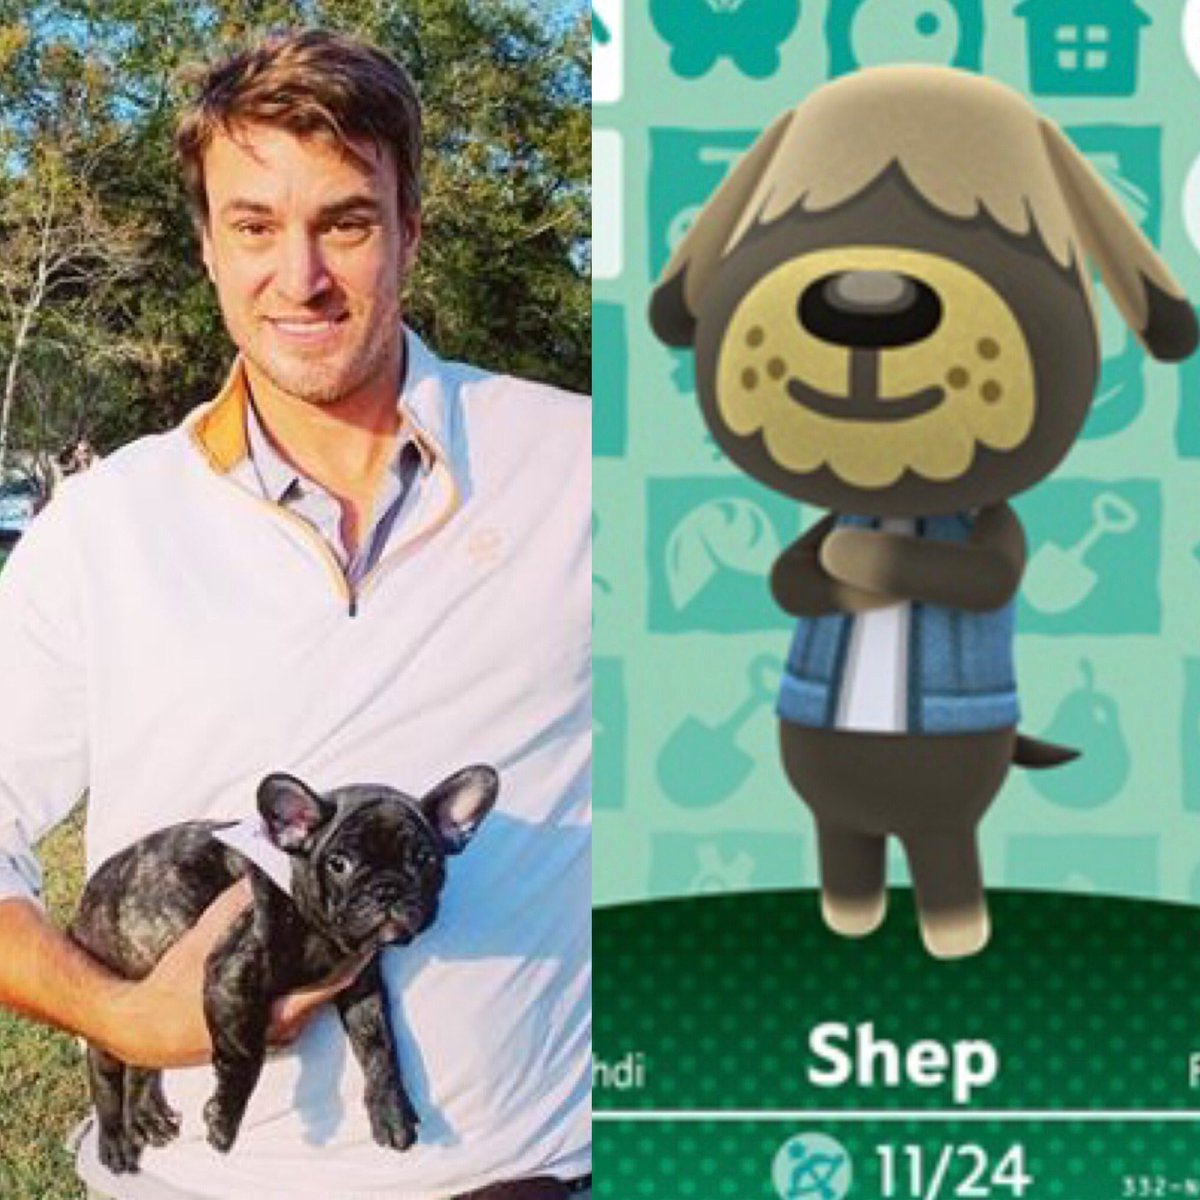 Bravo tv mashup 2: @ShepRose we all now own a little you! Crazy part, he's just like you! True story. 😊❤️ #acnh #Shep #southerncharm #bravotv @andycohn @C_Conover